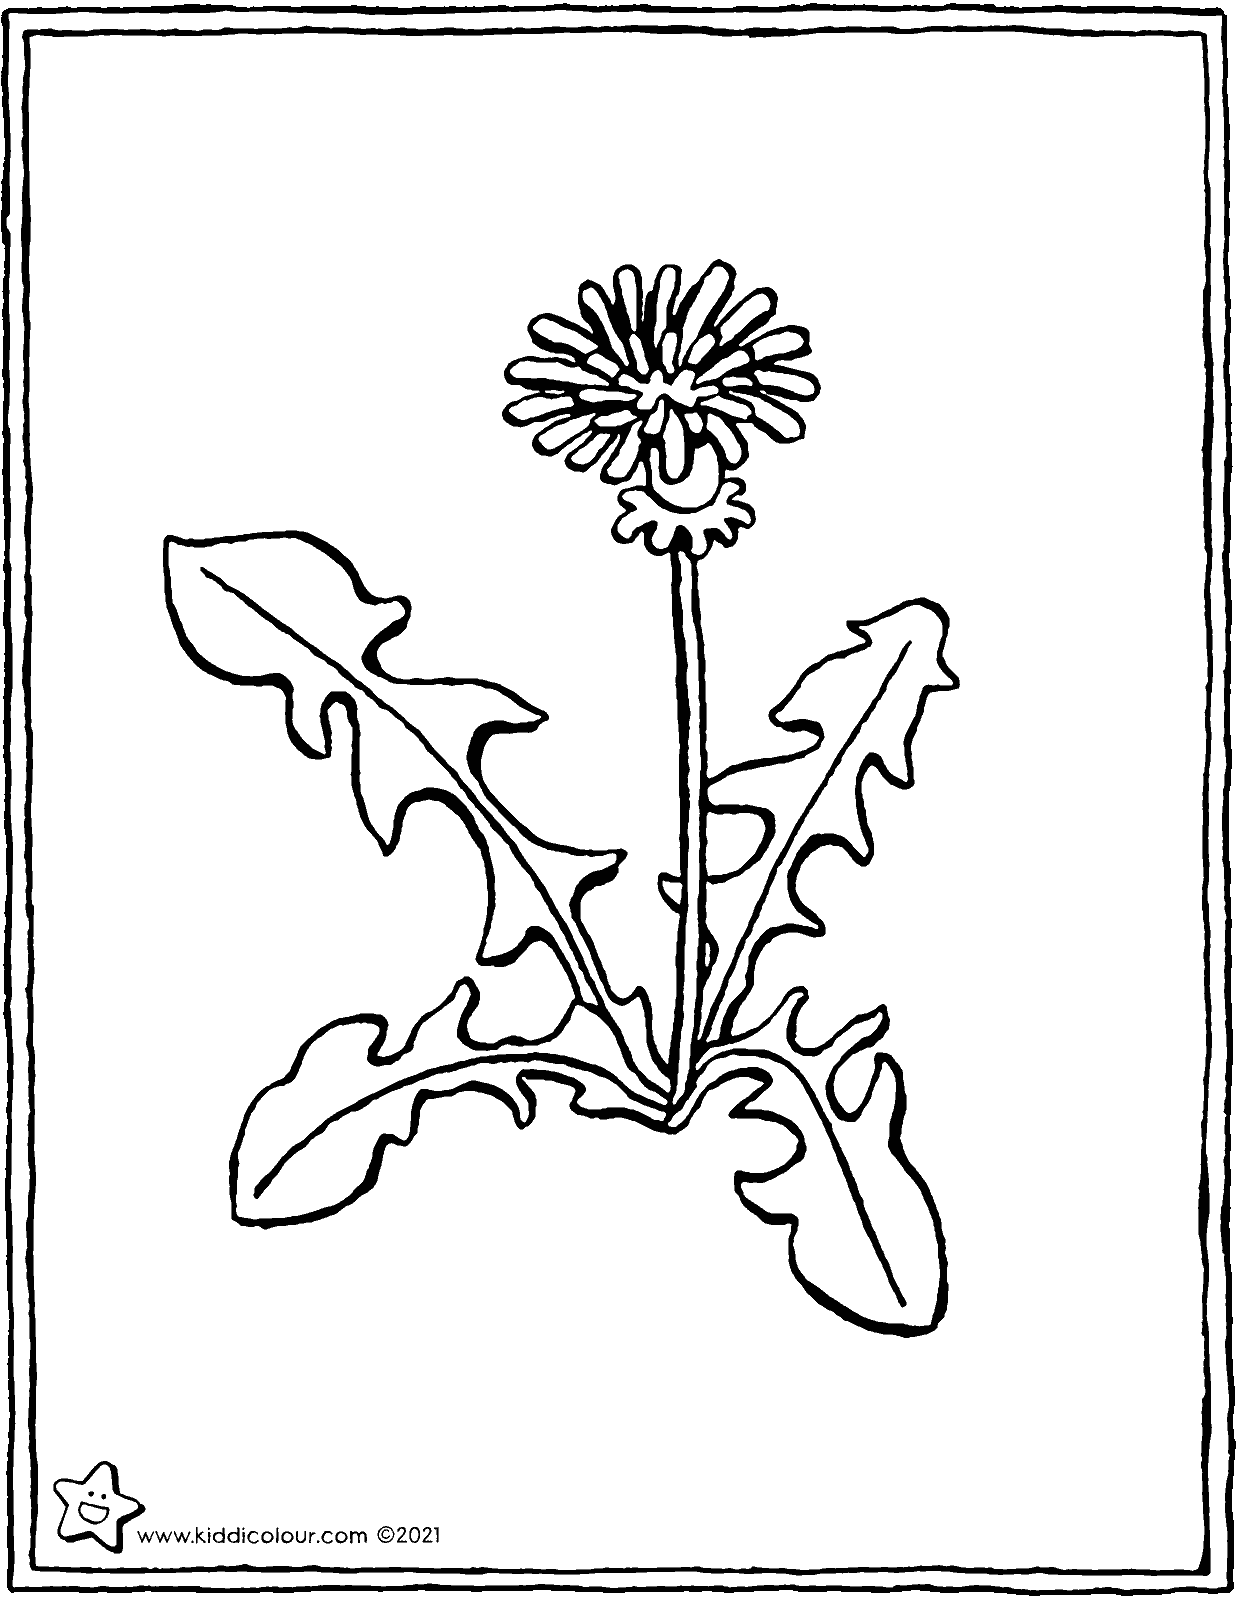 dandelion colouring page drawing picture 01V